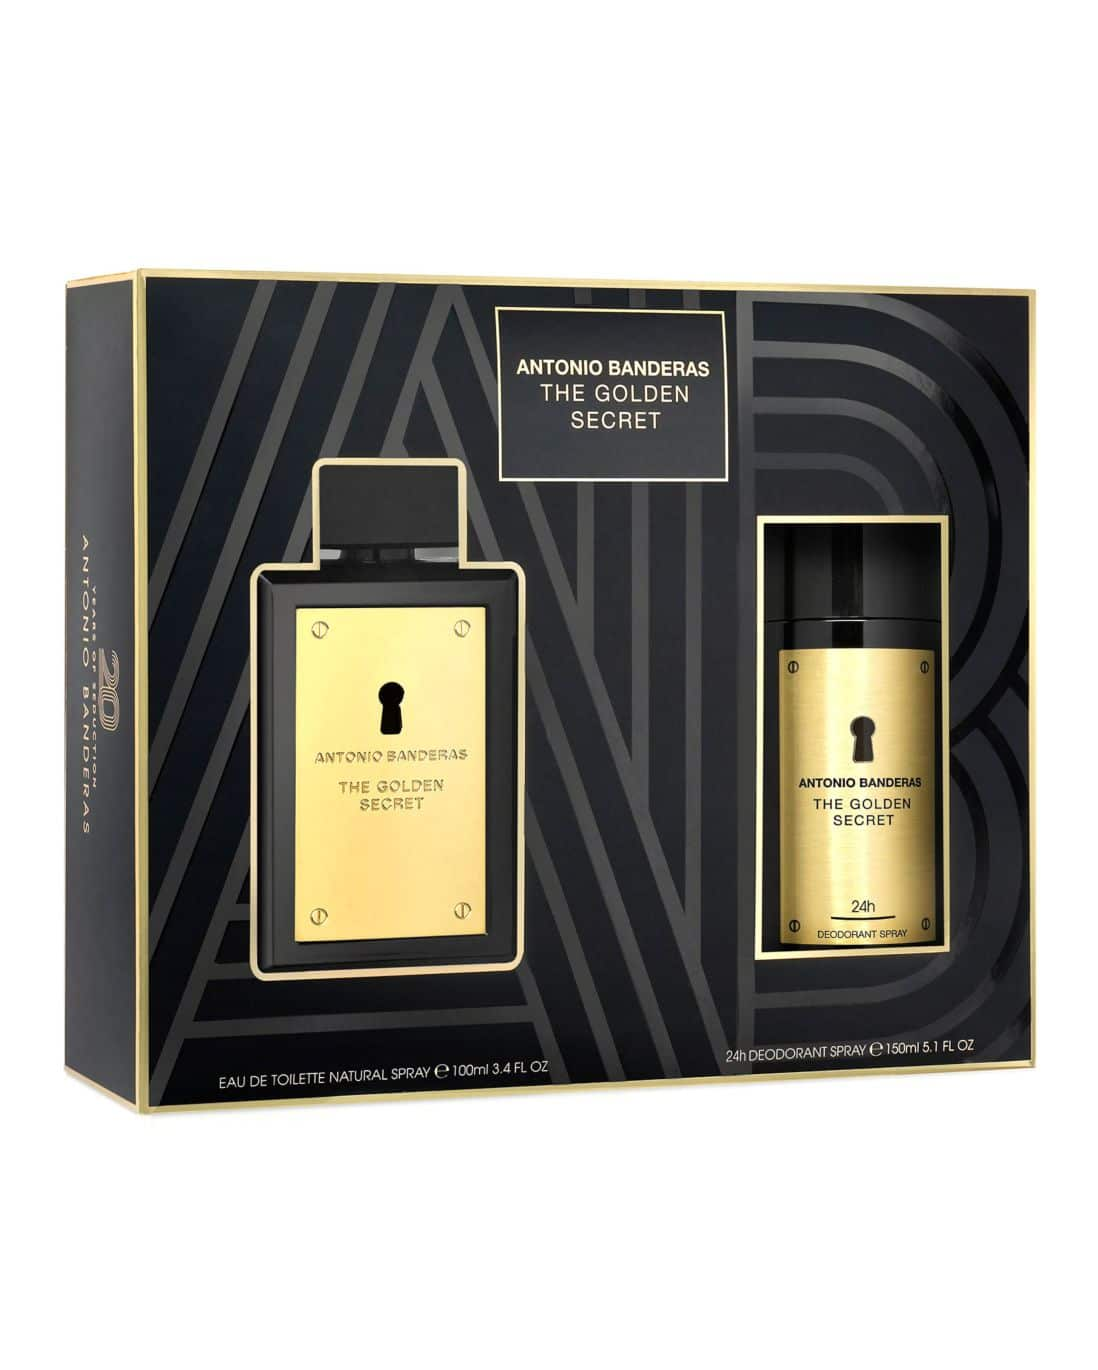 Kit Perfume The Golden Secret Antonio Banderas Masculino 100ml + Desodorante Antonio Banderas